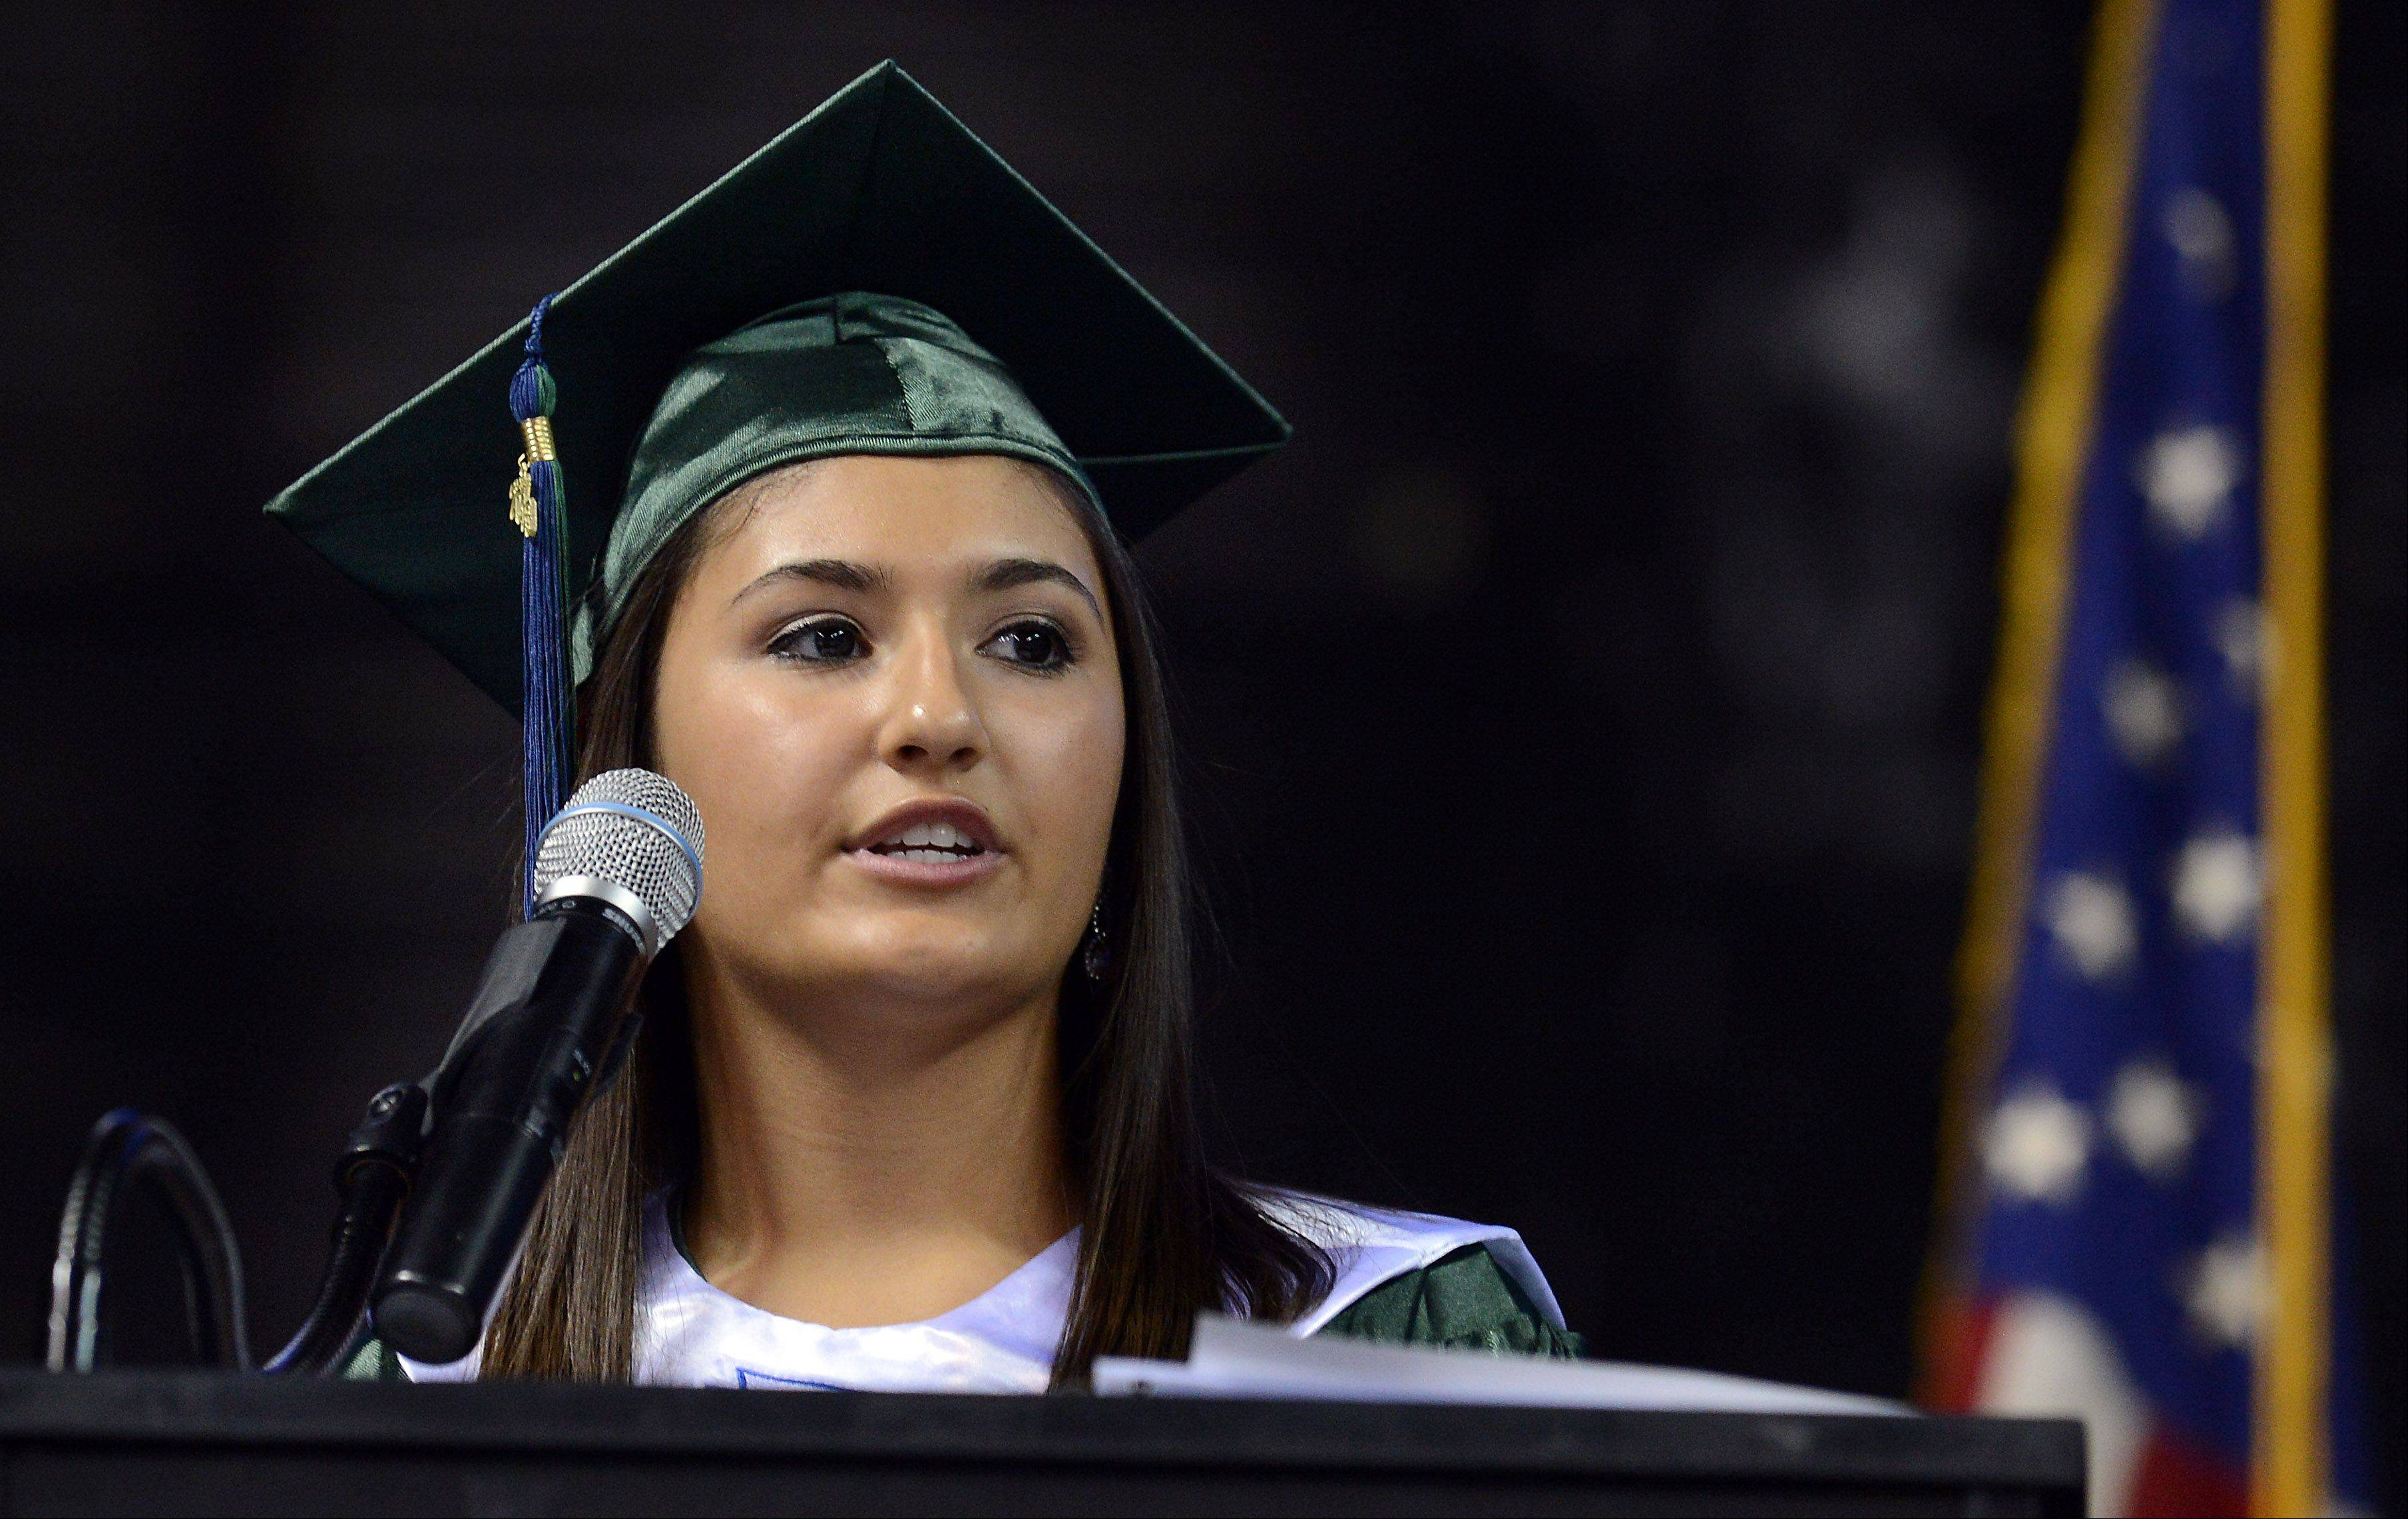 Daniella Amato, senior class president speaks to her classmates as she takes part in the Bartlett High School Commencement at the Sears Centre in Hoffman Estates on Saturday.